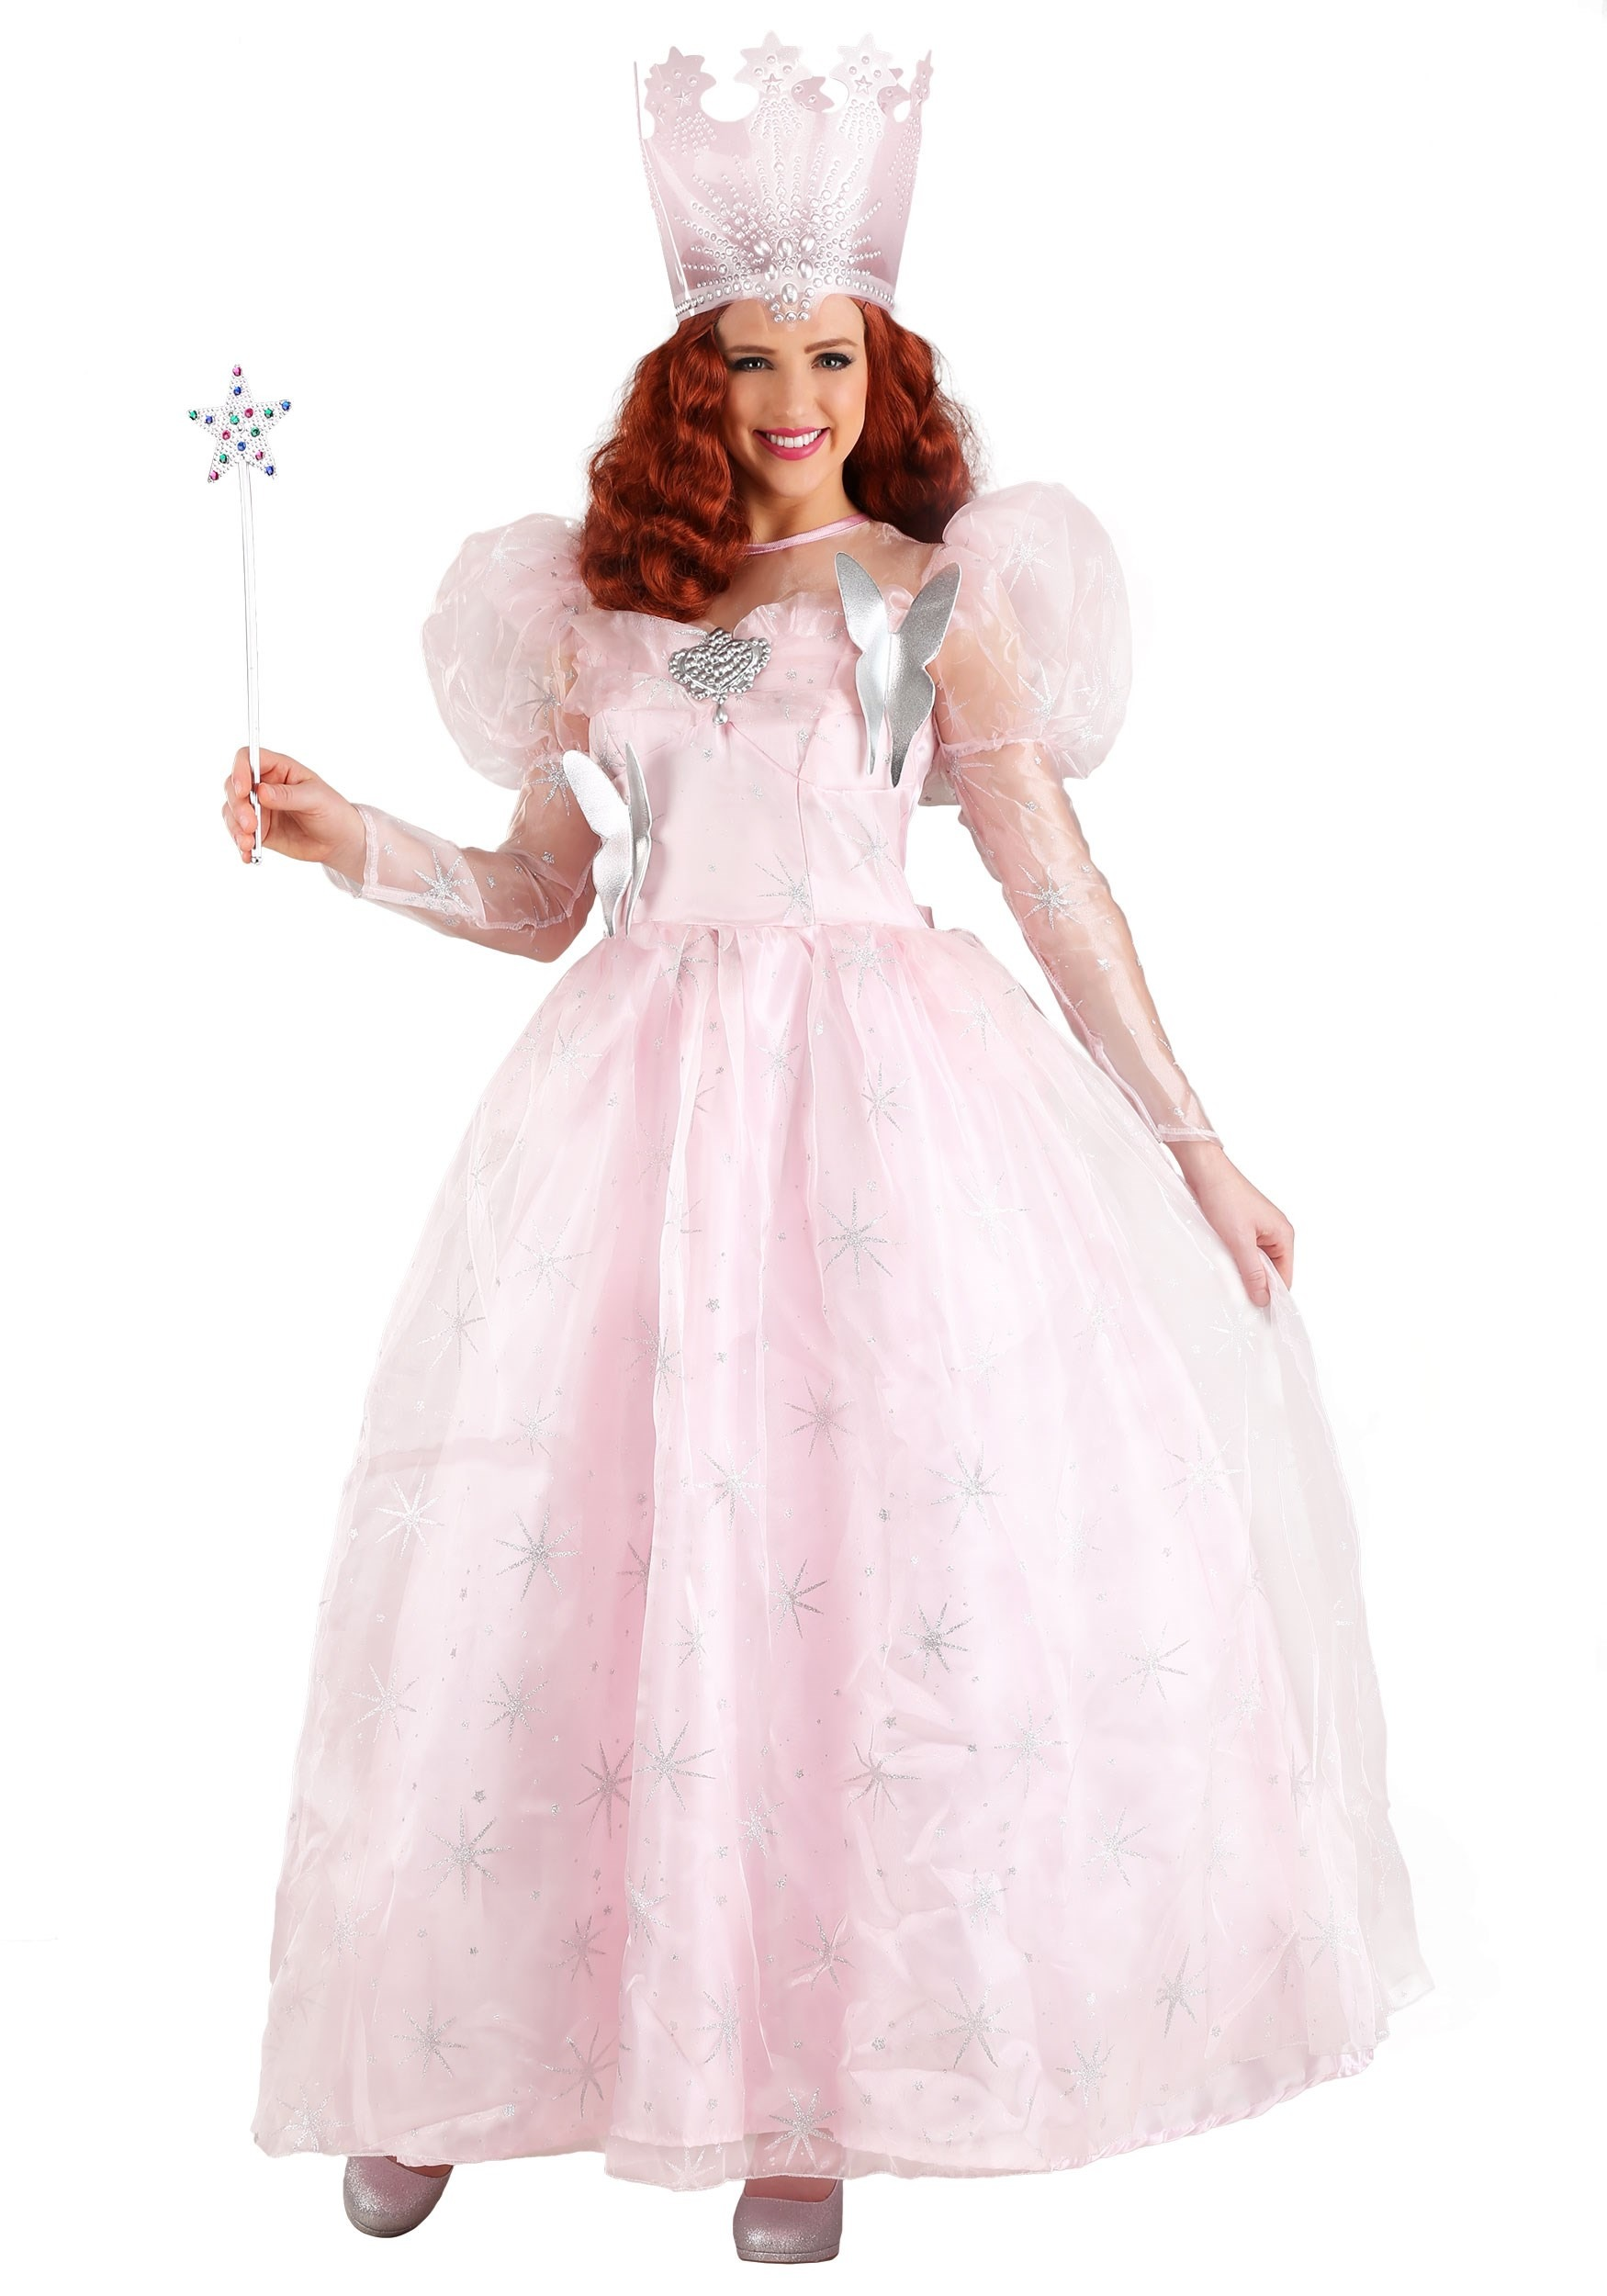 Plus Size Halloween Costumes - Plus Size Costumes e28e87d7ca4c